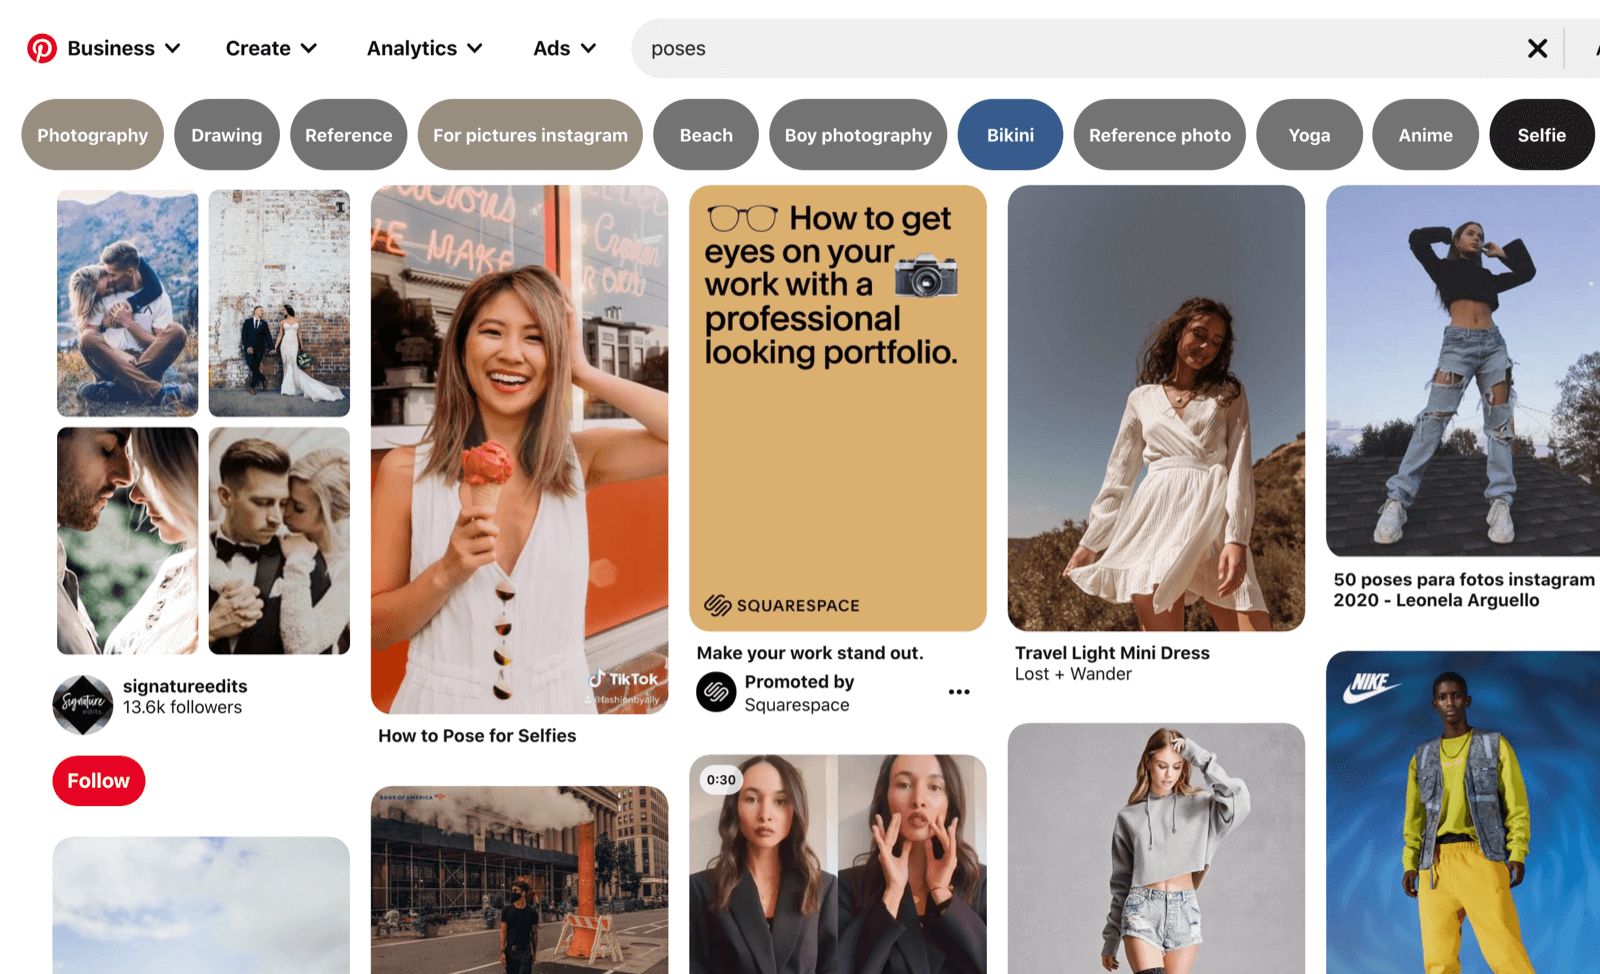 pinterest search for poses